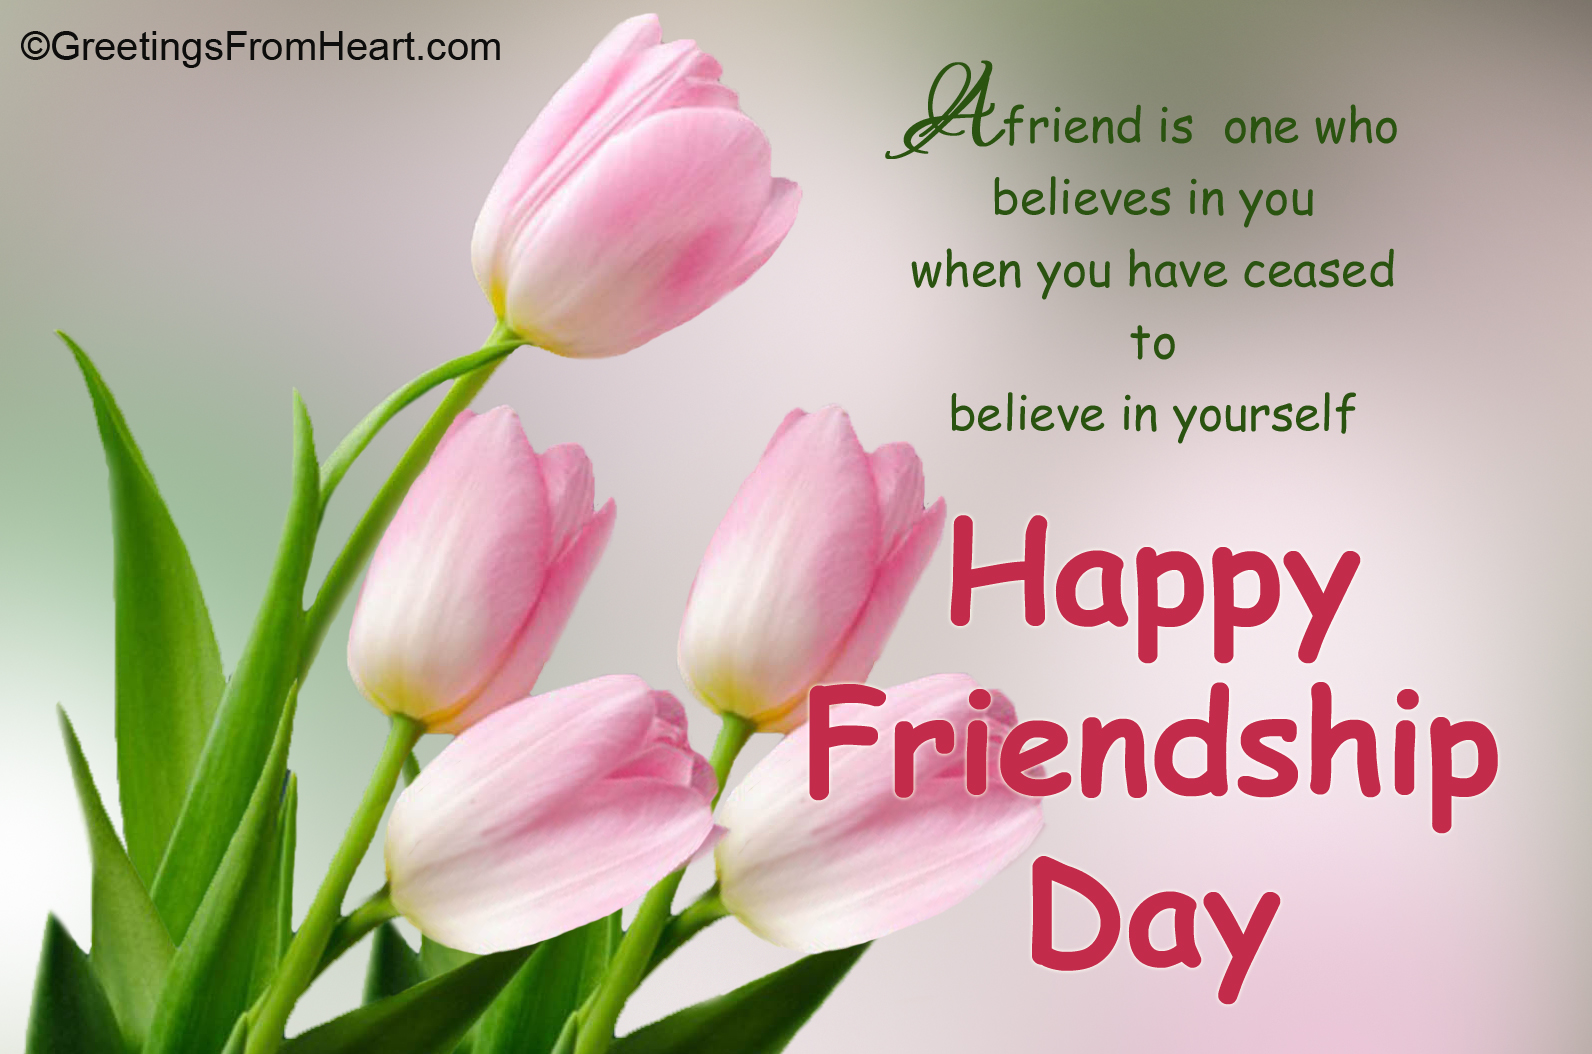 Friendship Day Friendship Day Cards Friendship Day Scraps